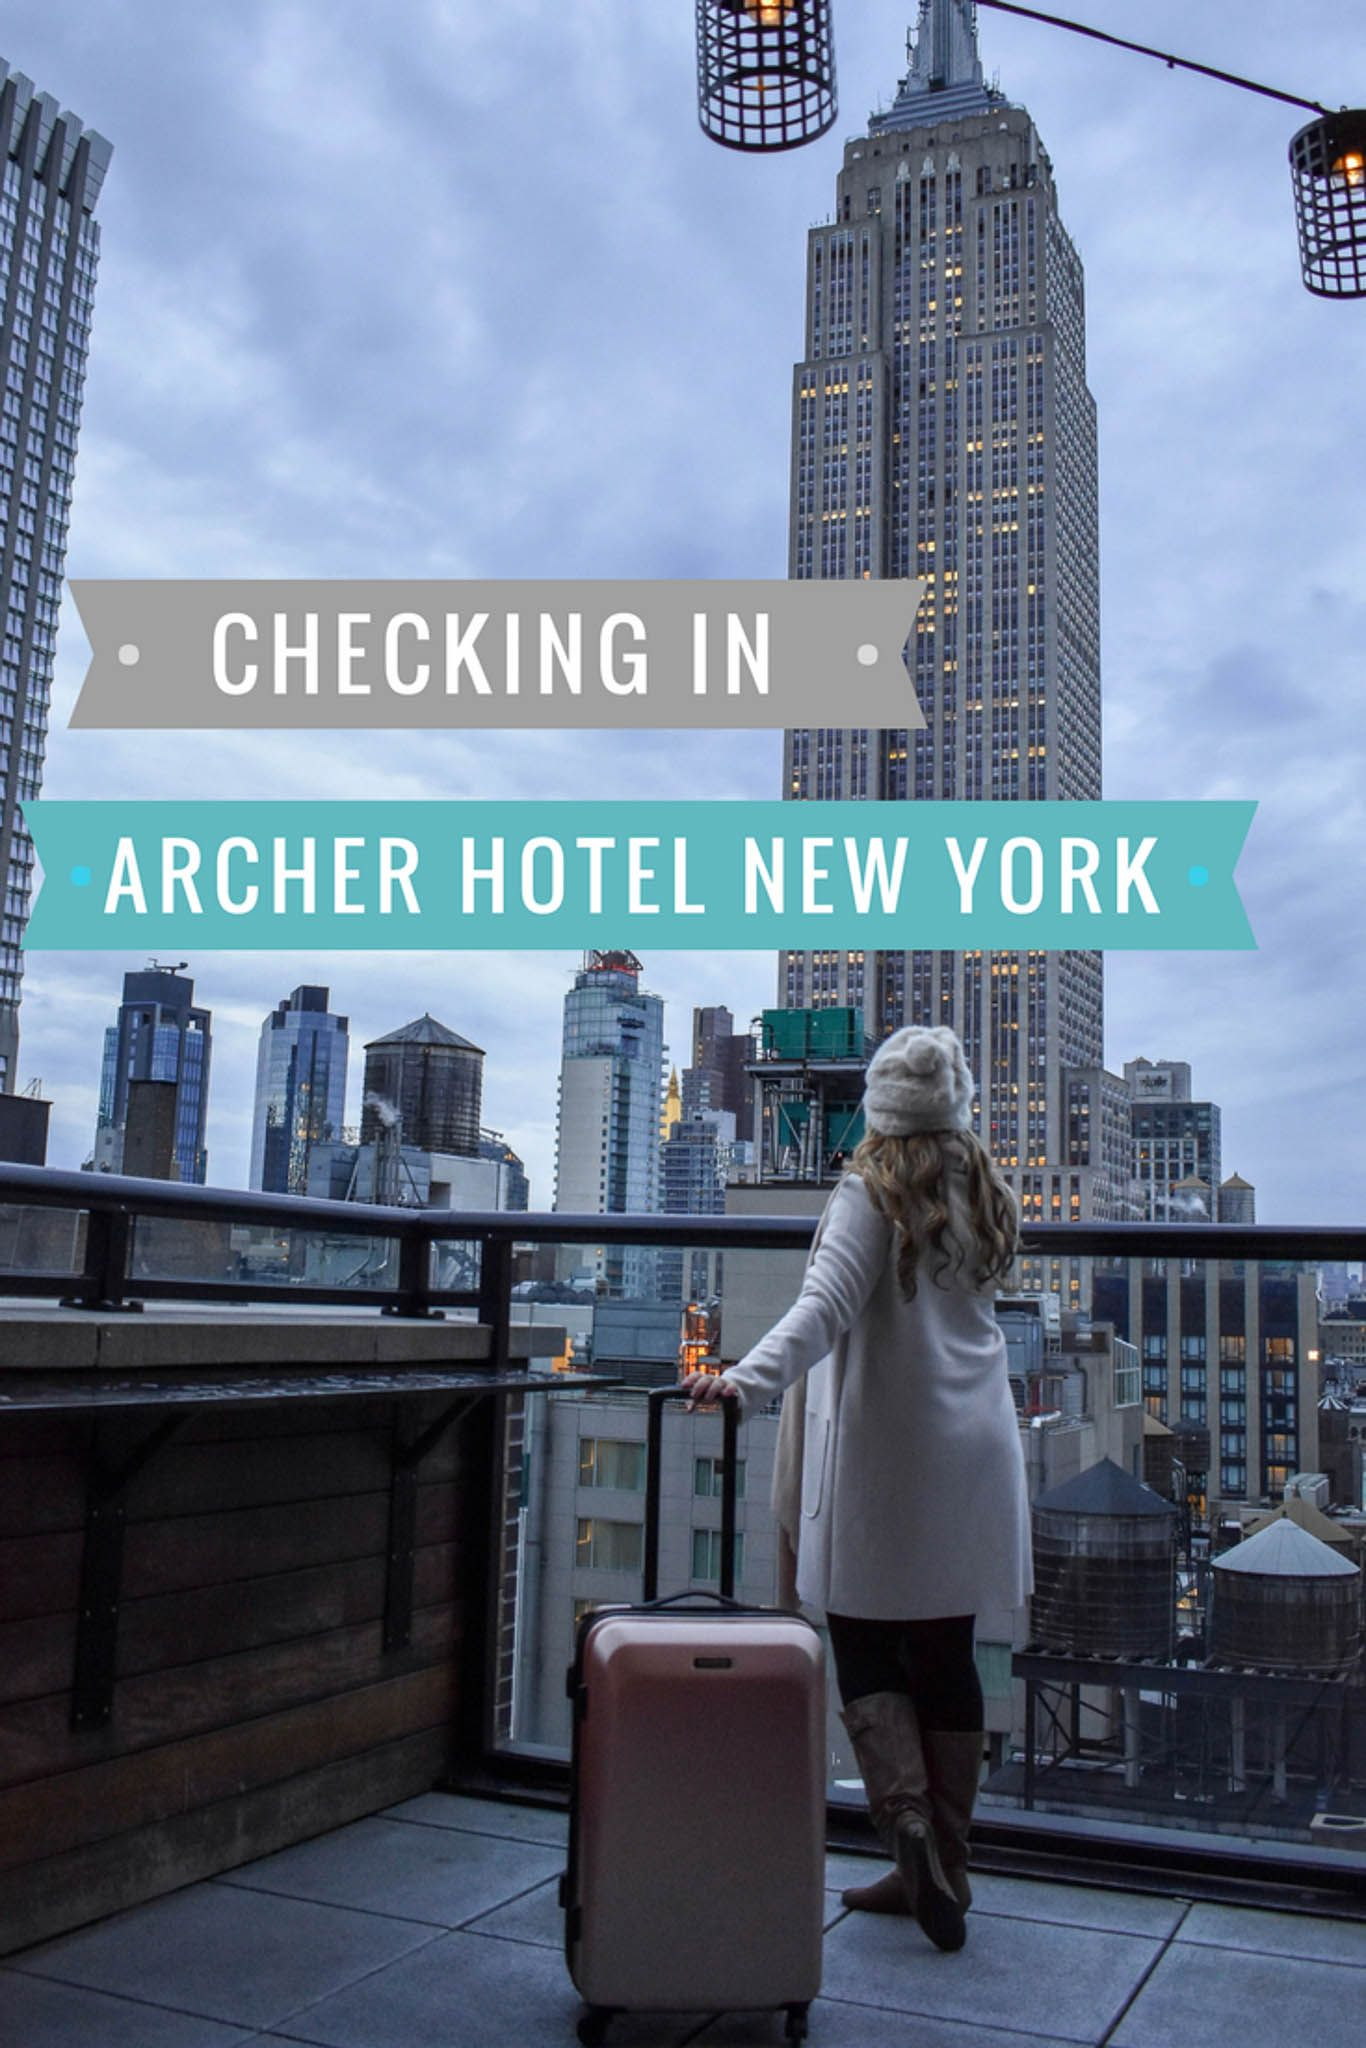 New York Hotel  Hotels Warranty Extension Offer